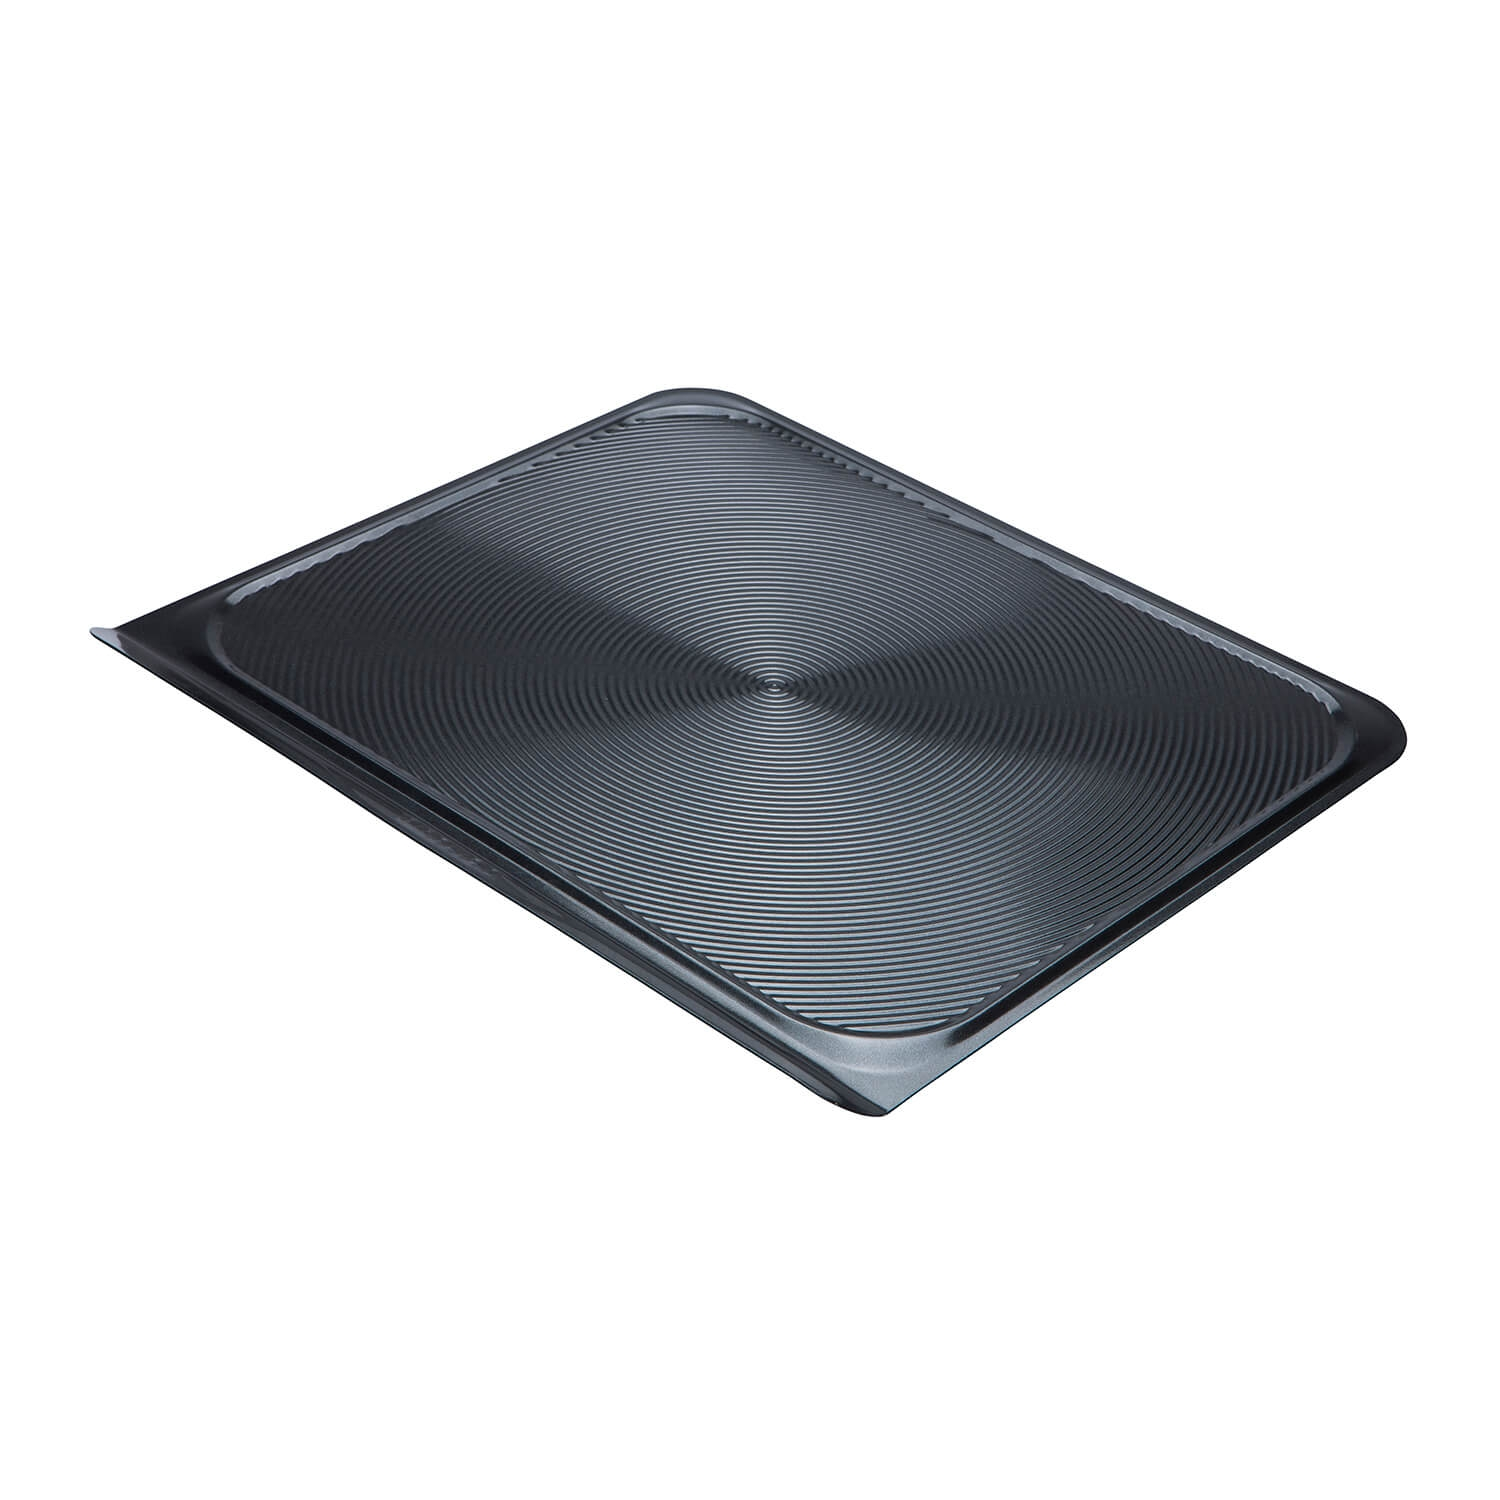 Image of Circulon Insulated Baking Sheet, Black